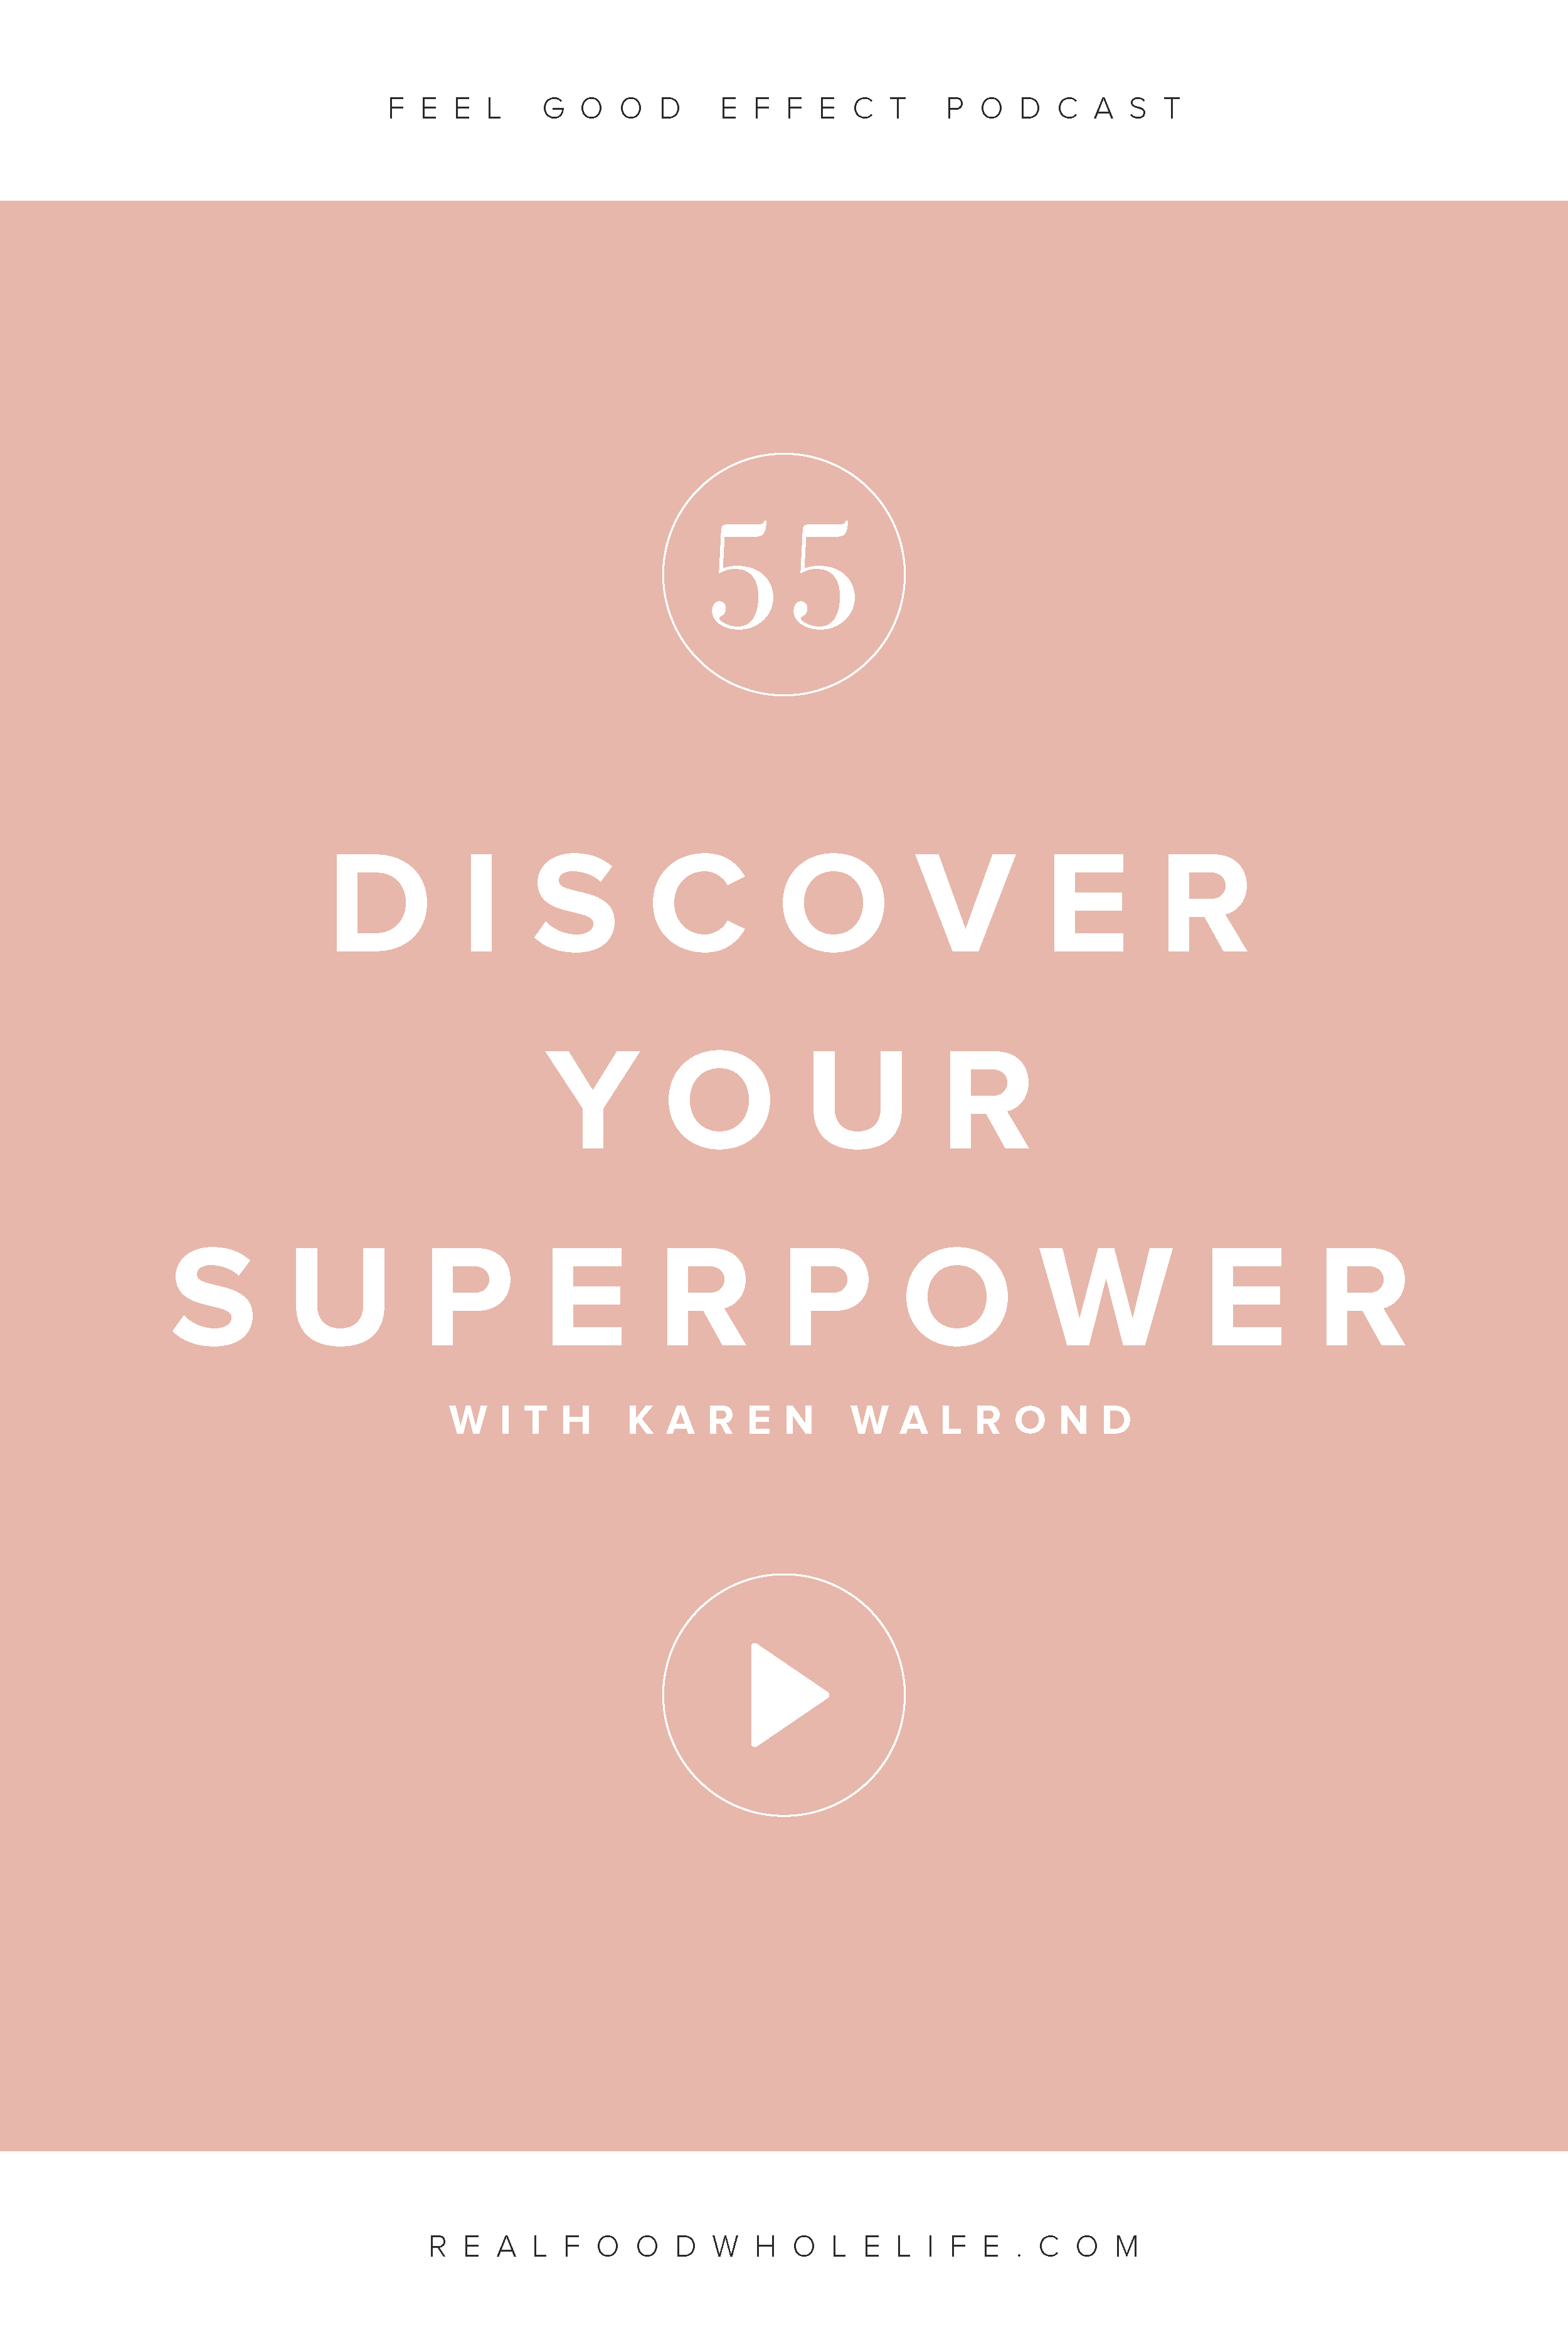 How to Discover Your Superpower with expert guest, Karen Walrond